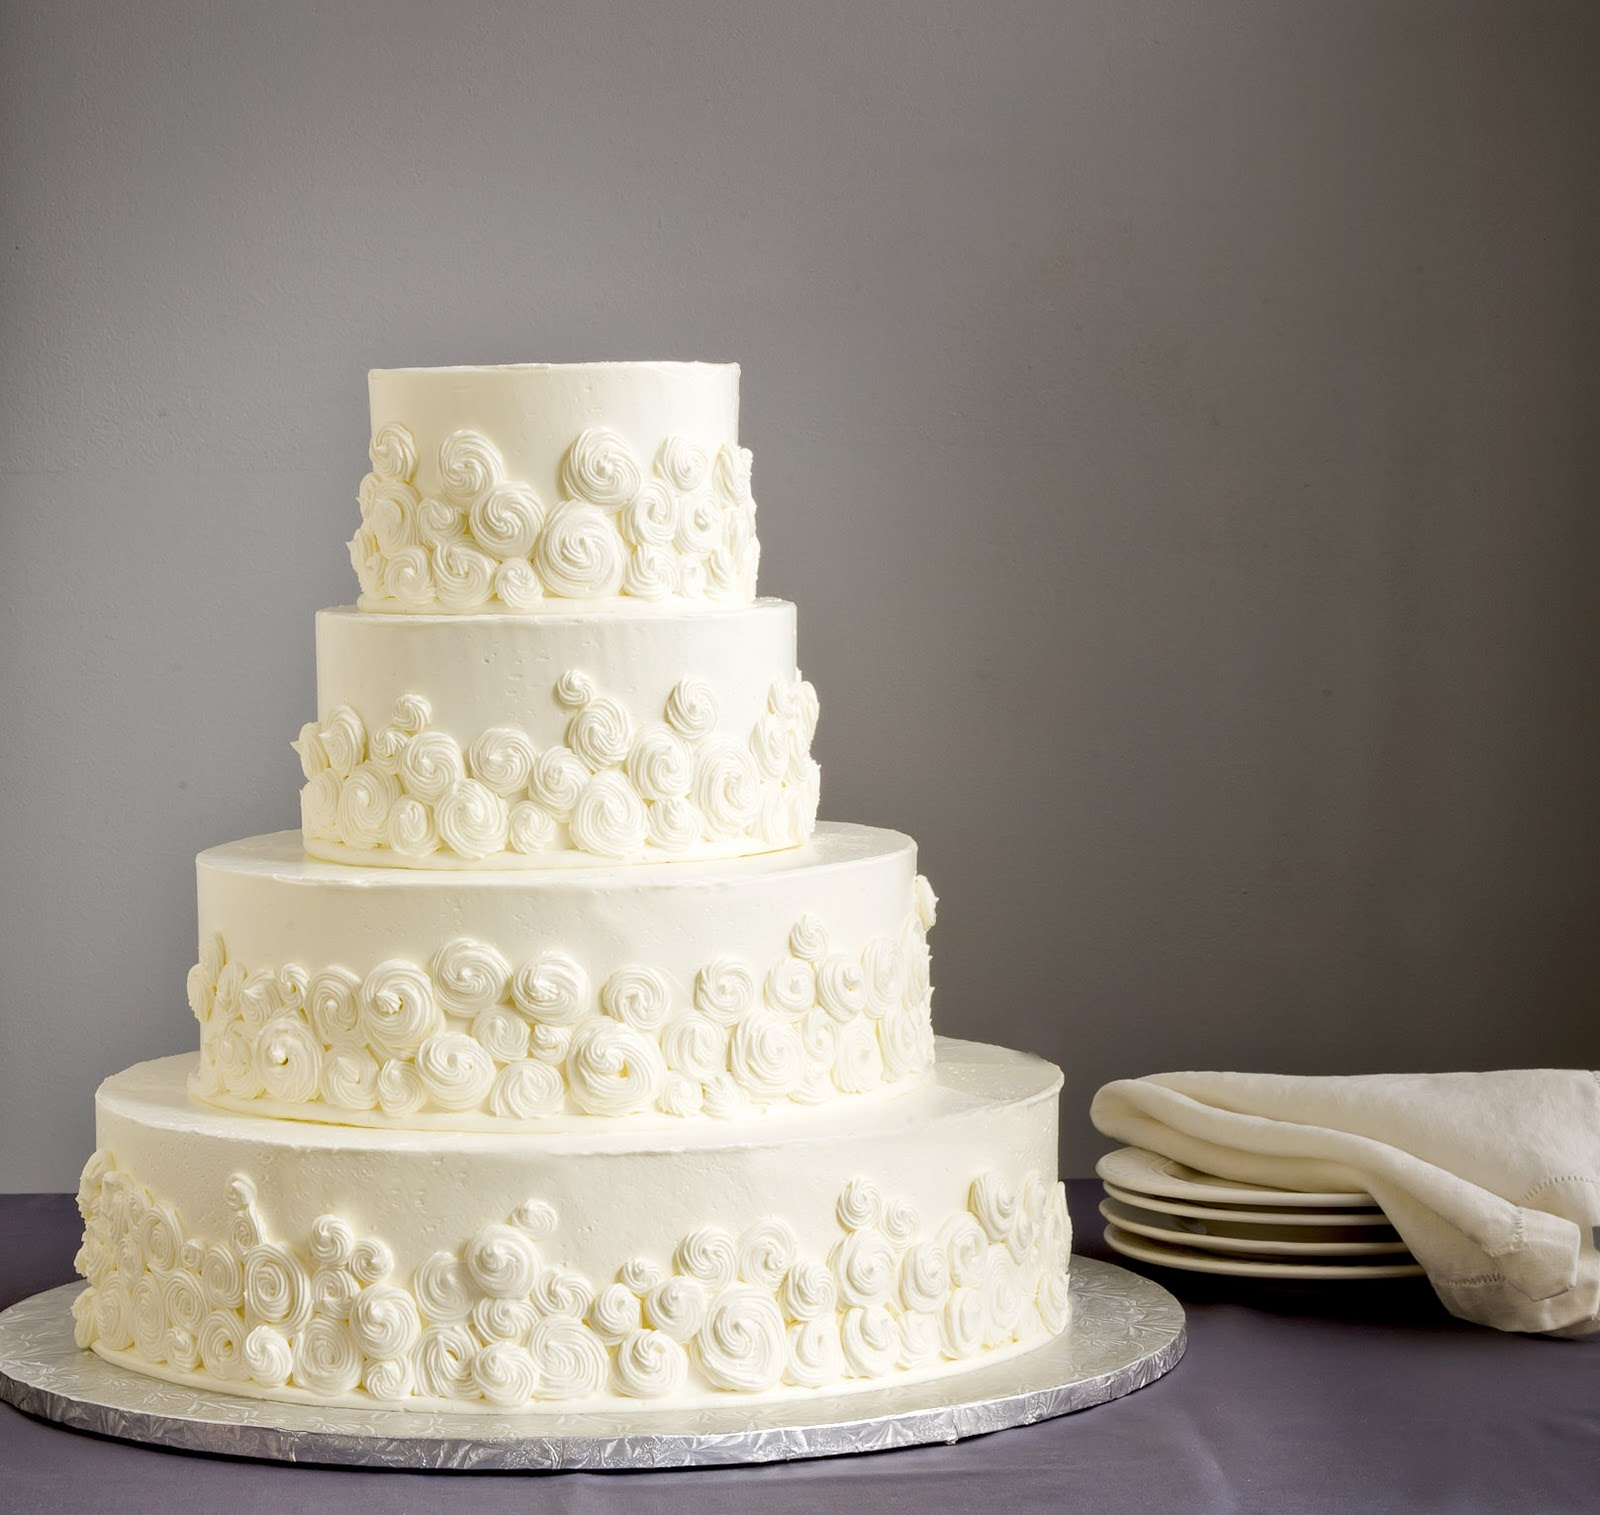 A Simple Cake: THREE NEW Wedding Cake Ideas